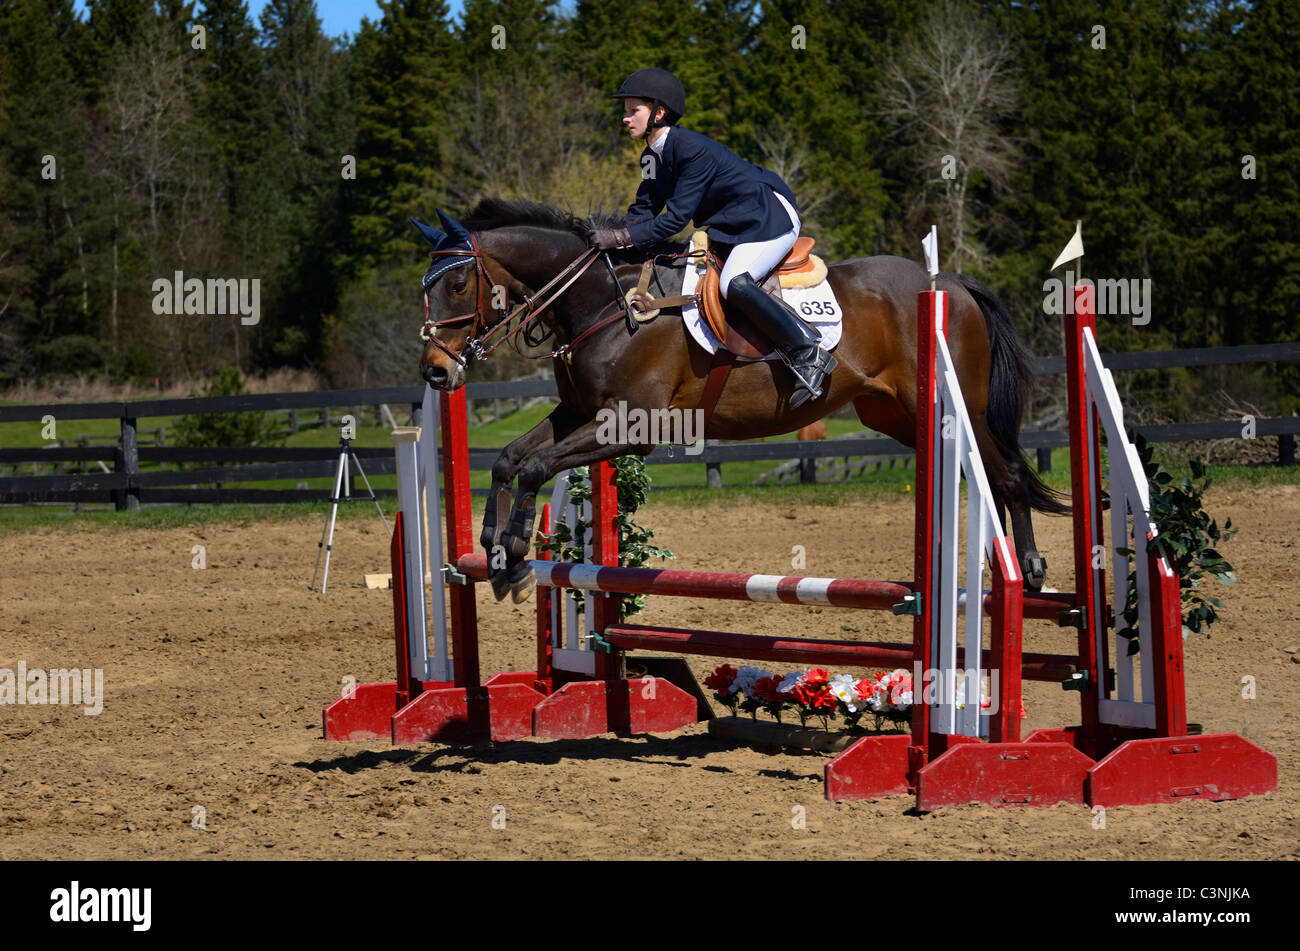 Teen horse rider jumping over a ramped oxer fence at an outdoor equestrian show competition Ontario - Stock Image